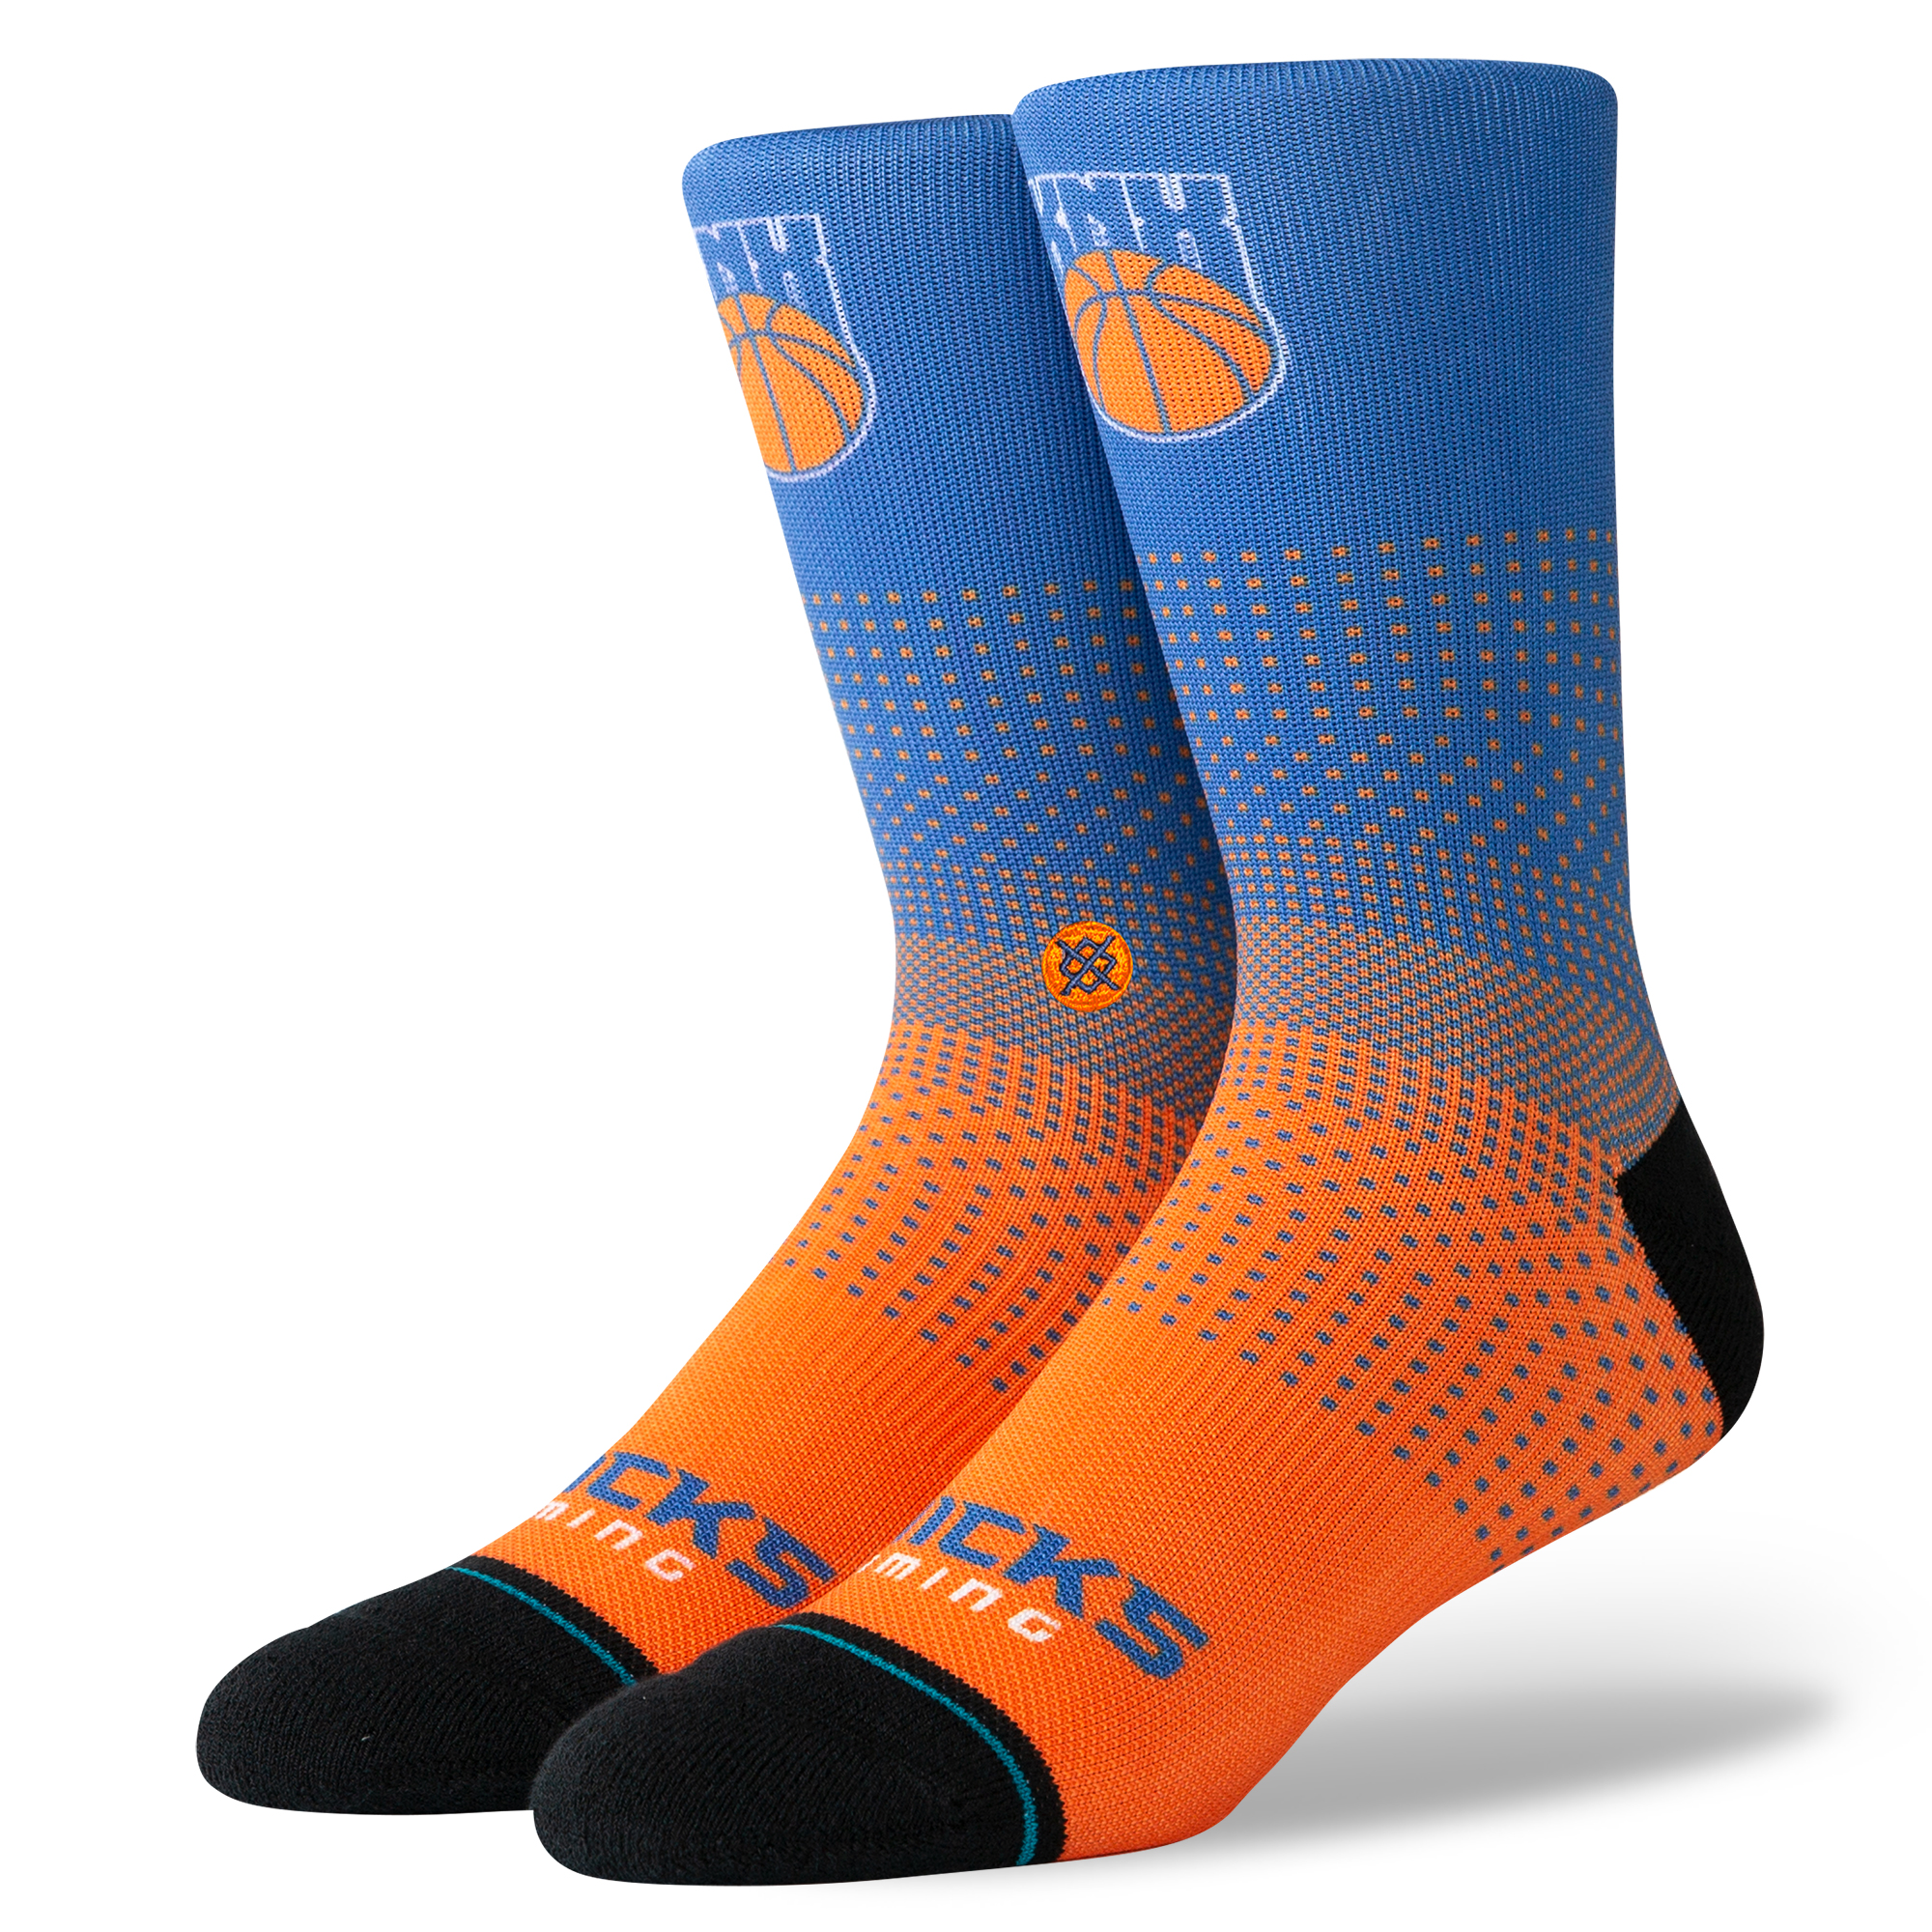 Sock supplier Stance is now teaming up with the NBA's esports league.